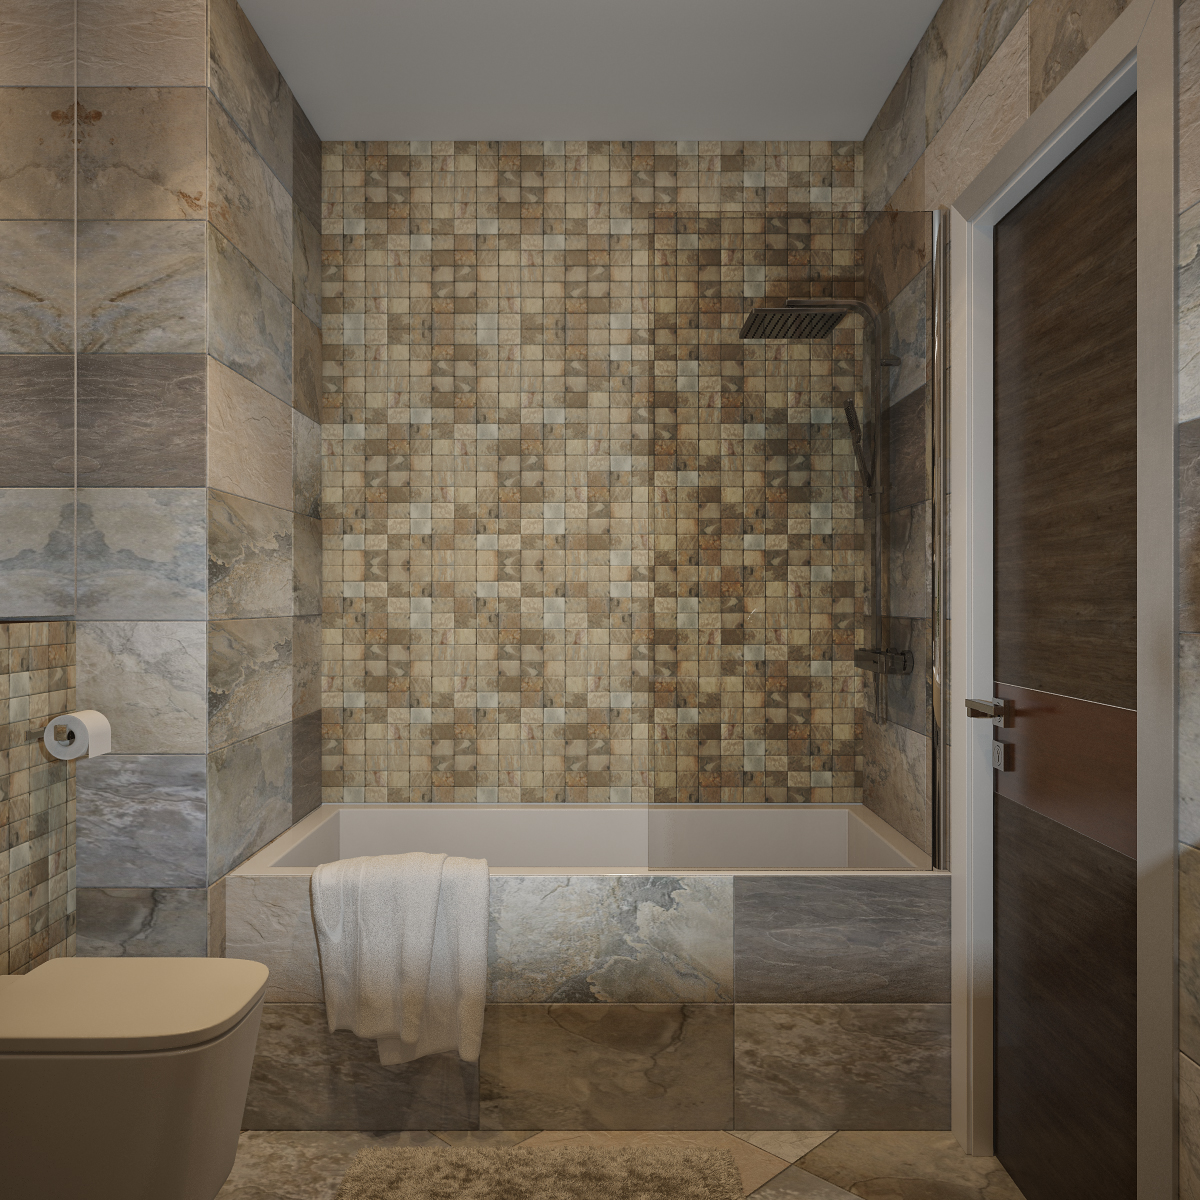 Beautify your bathroom with mosaics Mosaic tile designs for shower